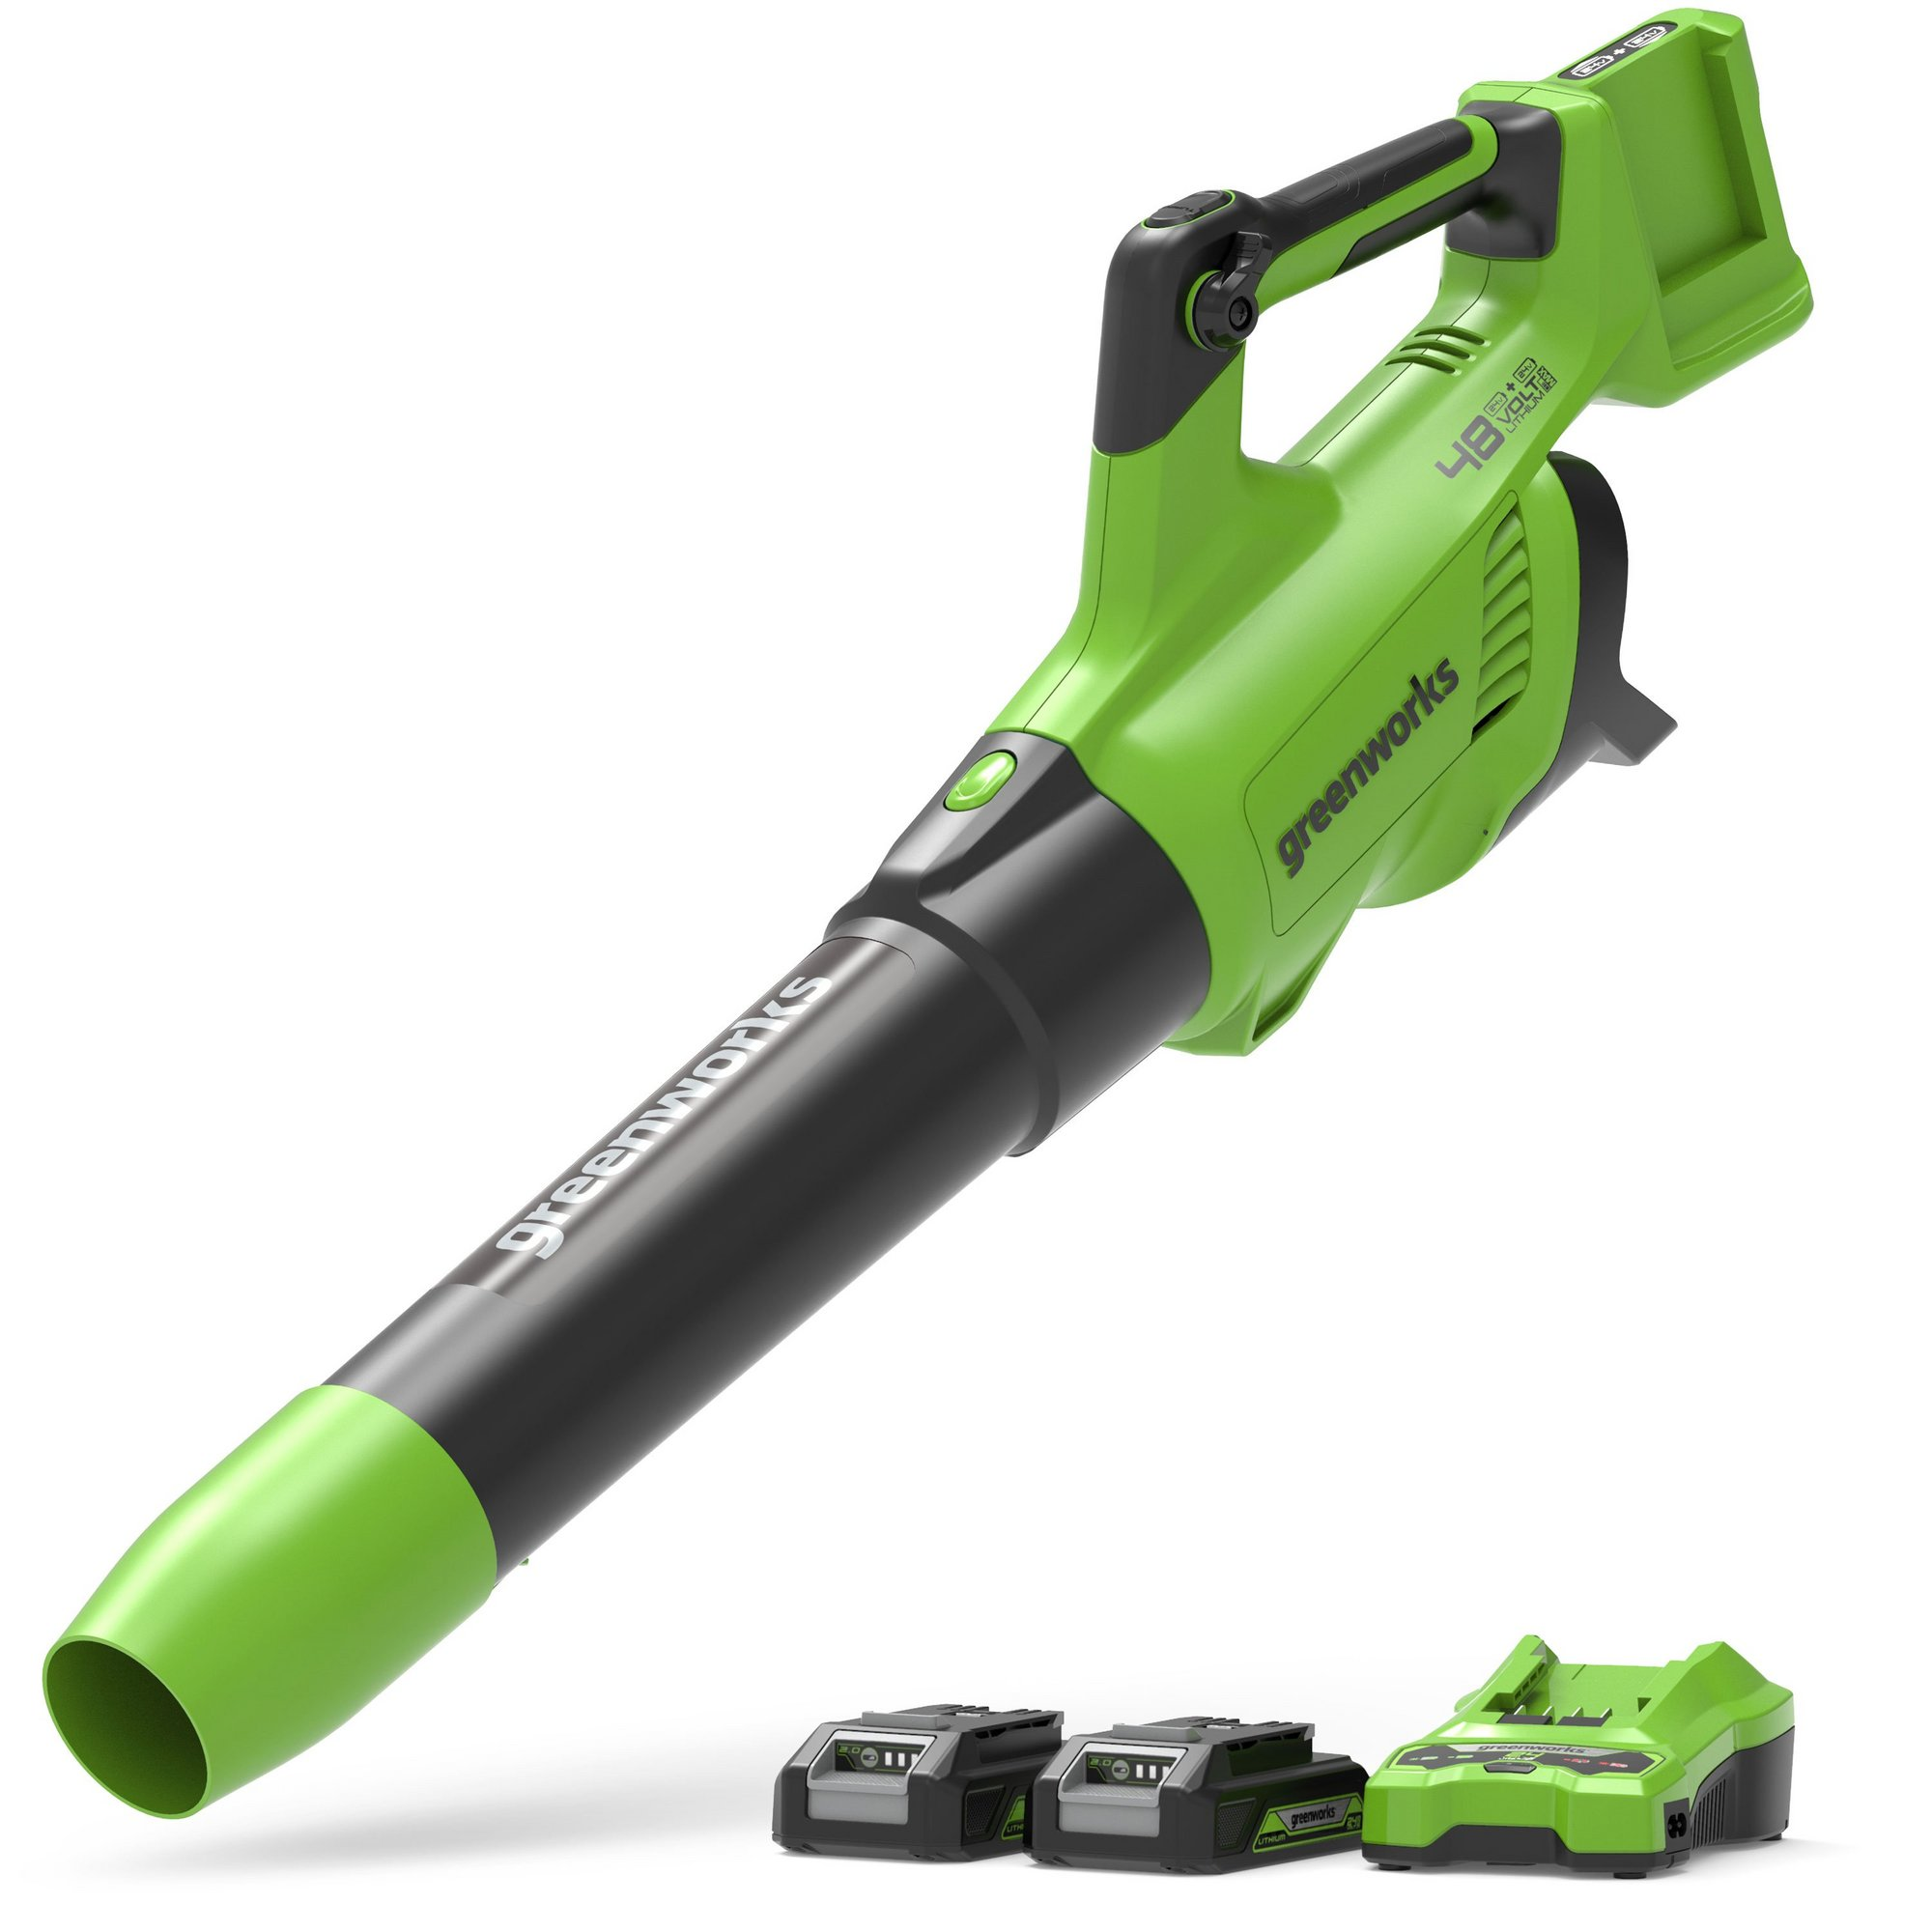 Image of Greenworks 48V Cordless Variable Speed Axial Blower with 2 x 24V ...